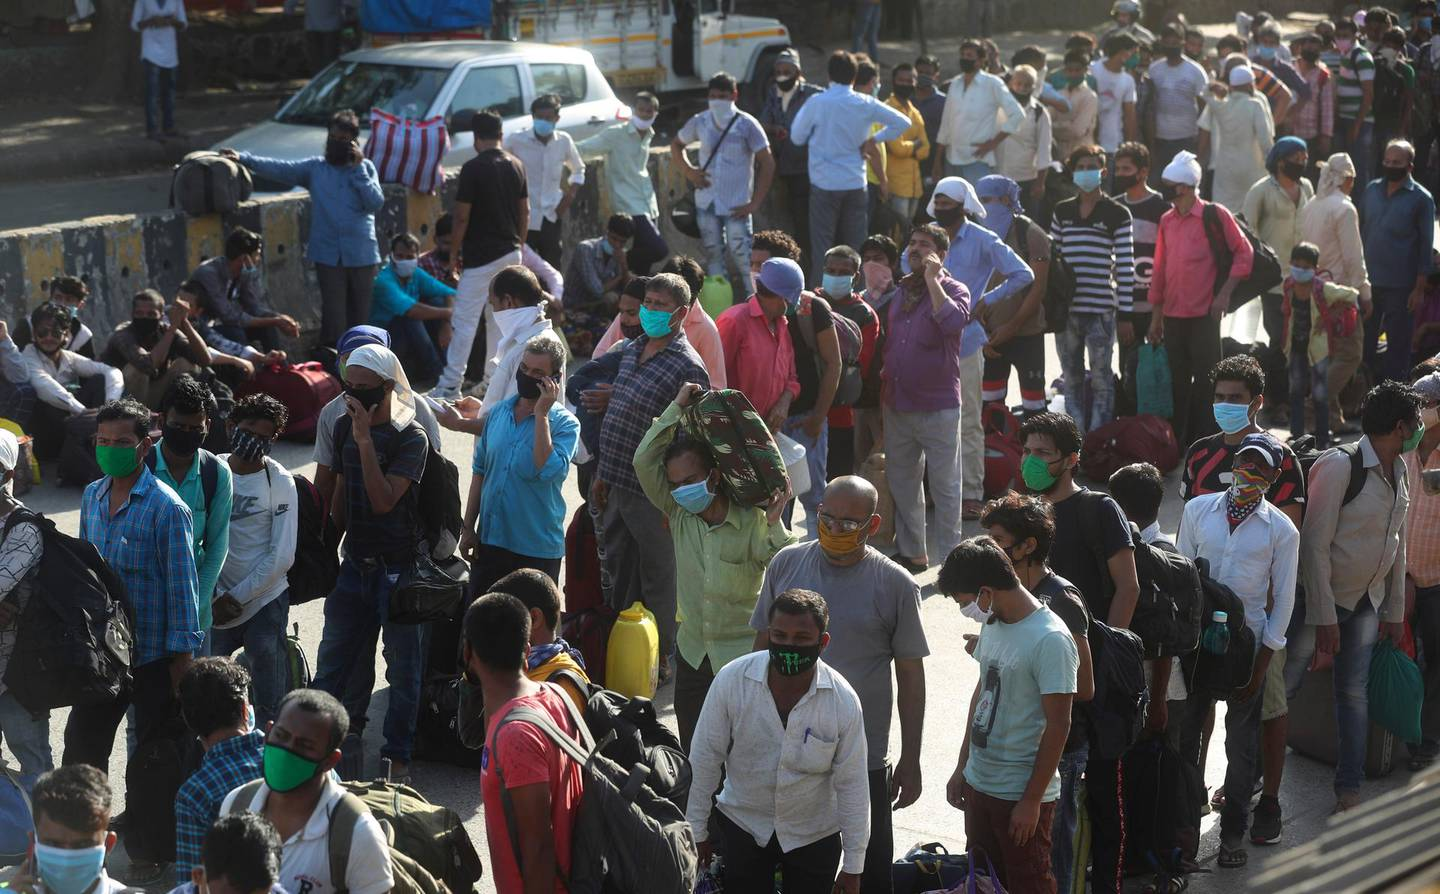 Migrant workers line up to board buses for their onward journey by train to their home states, at Dharavi, one of Asia's largest slums, in Mumbai, India, Friday, May 22, 2020. India's lockdown was imposed on March 25 and has been extended several times. On May 4, India eased lockdown rules and allowed migrant workers to travel back to their homes, a decision that has resulted in millions of people being on the move for the last two weeks. (AP Photo/Rafiq Maqbool)